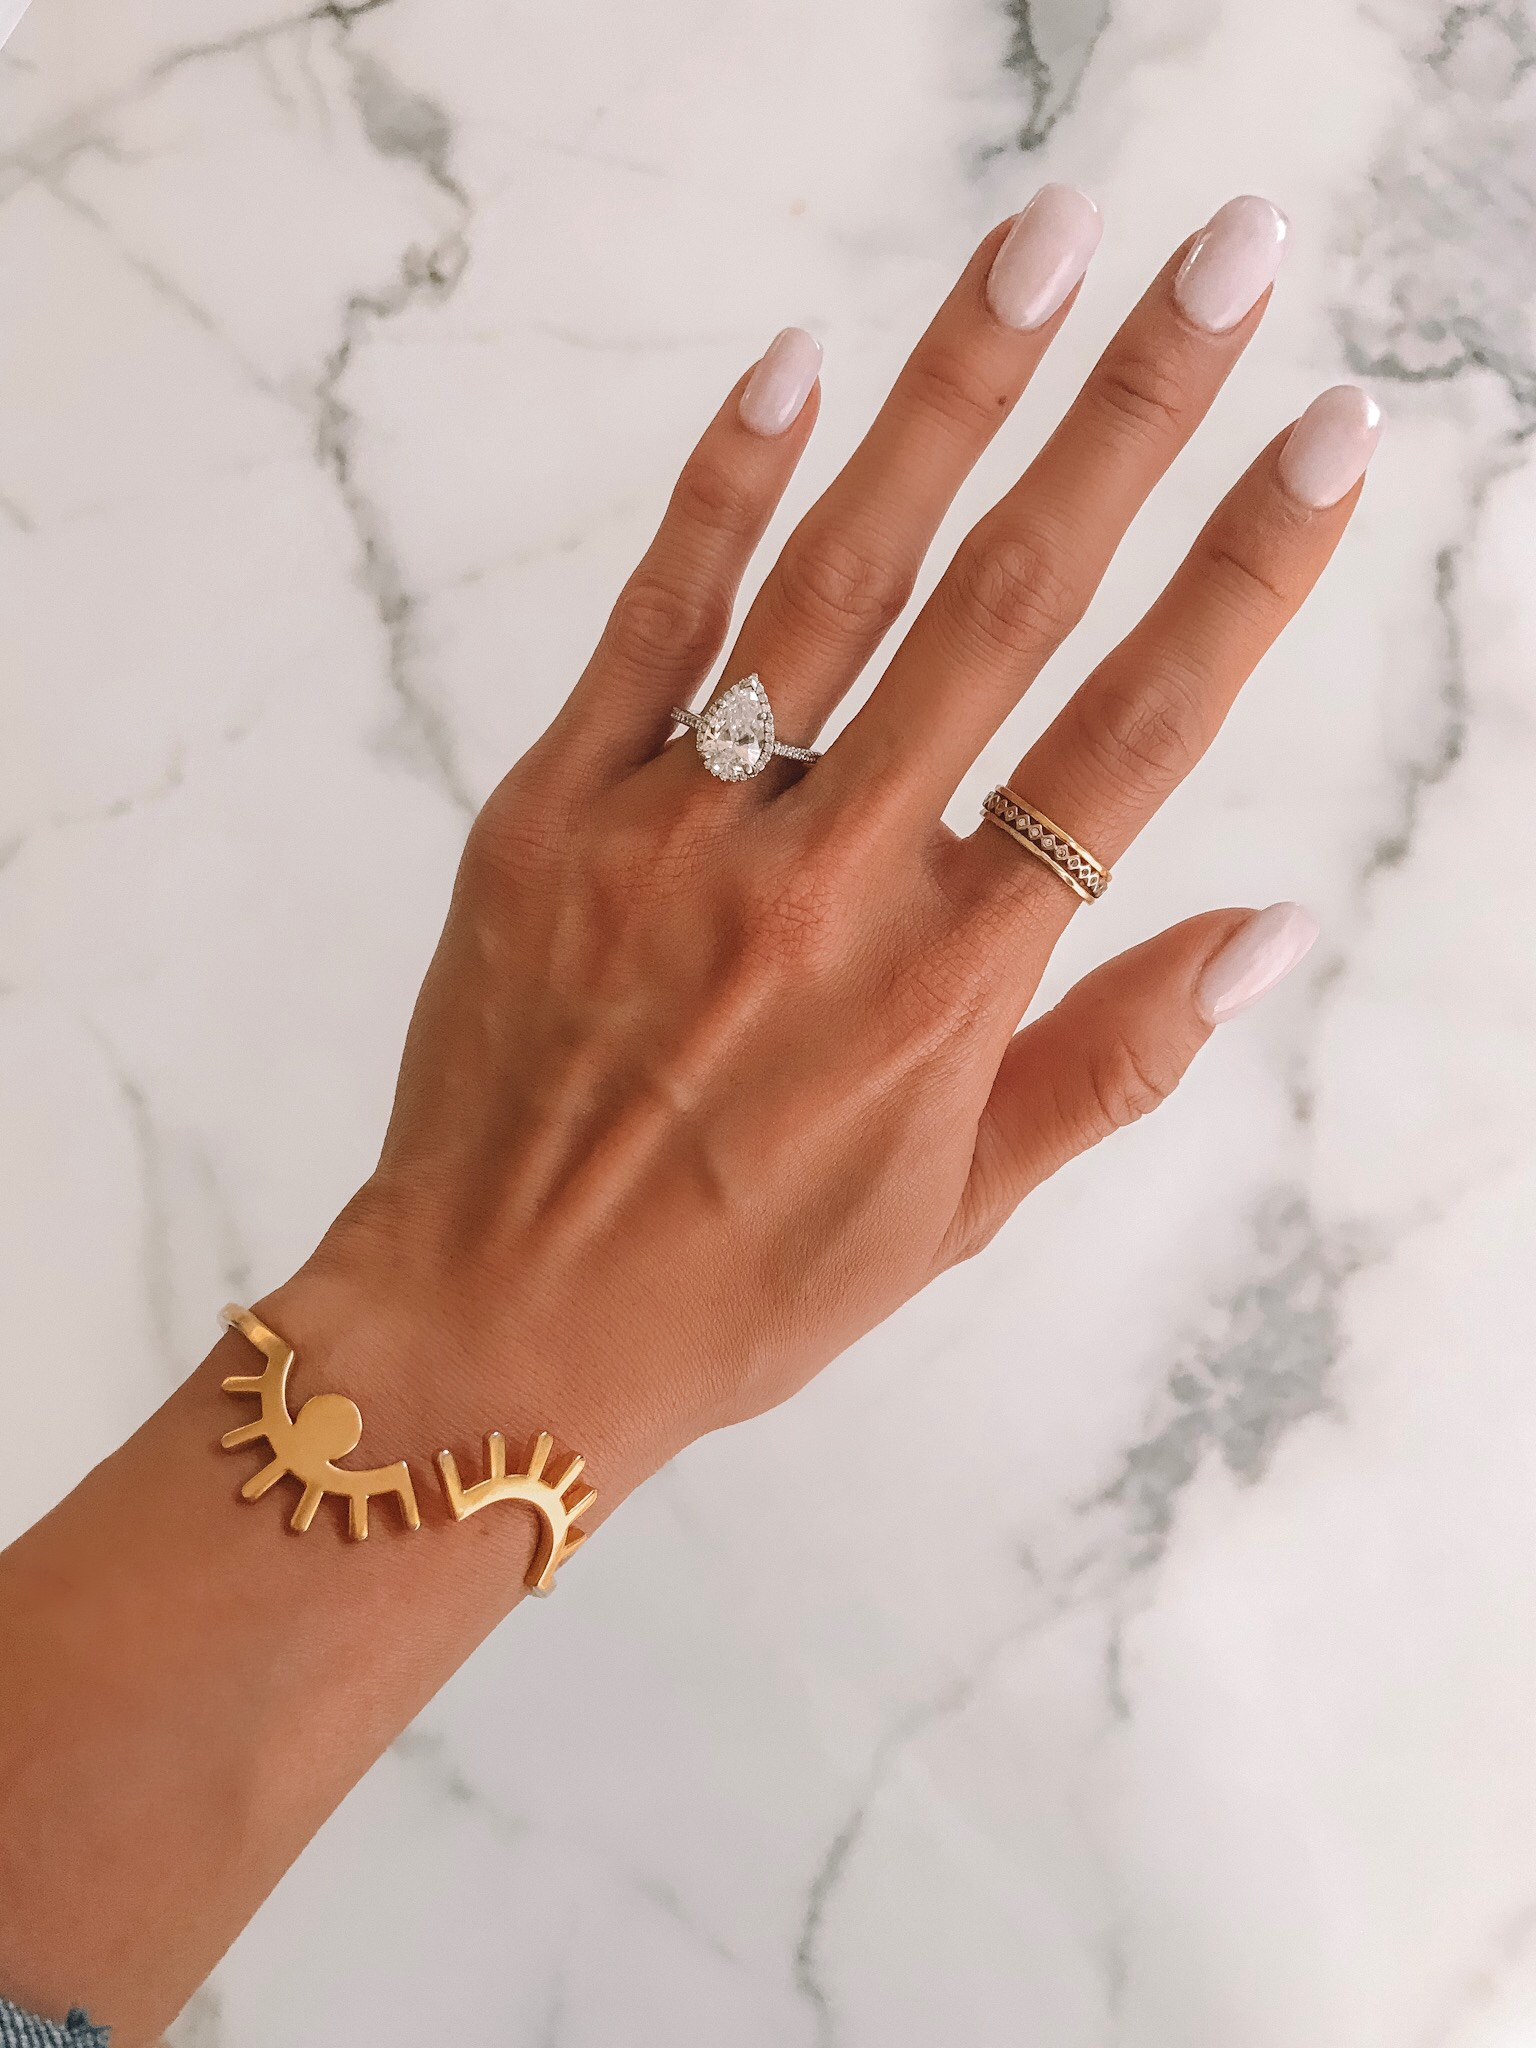 Design Your Own Engagement Ring From Scratch Online Blue Nile Review